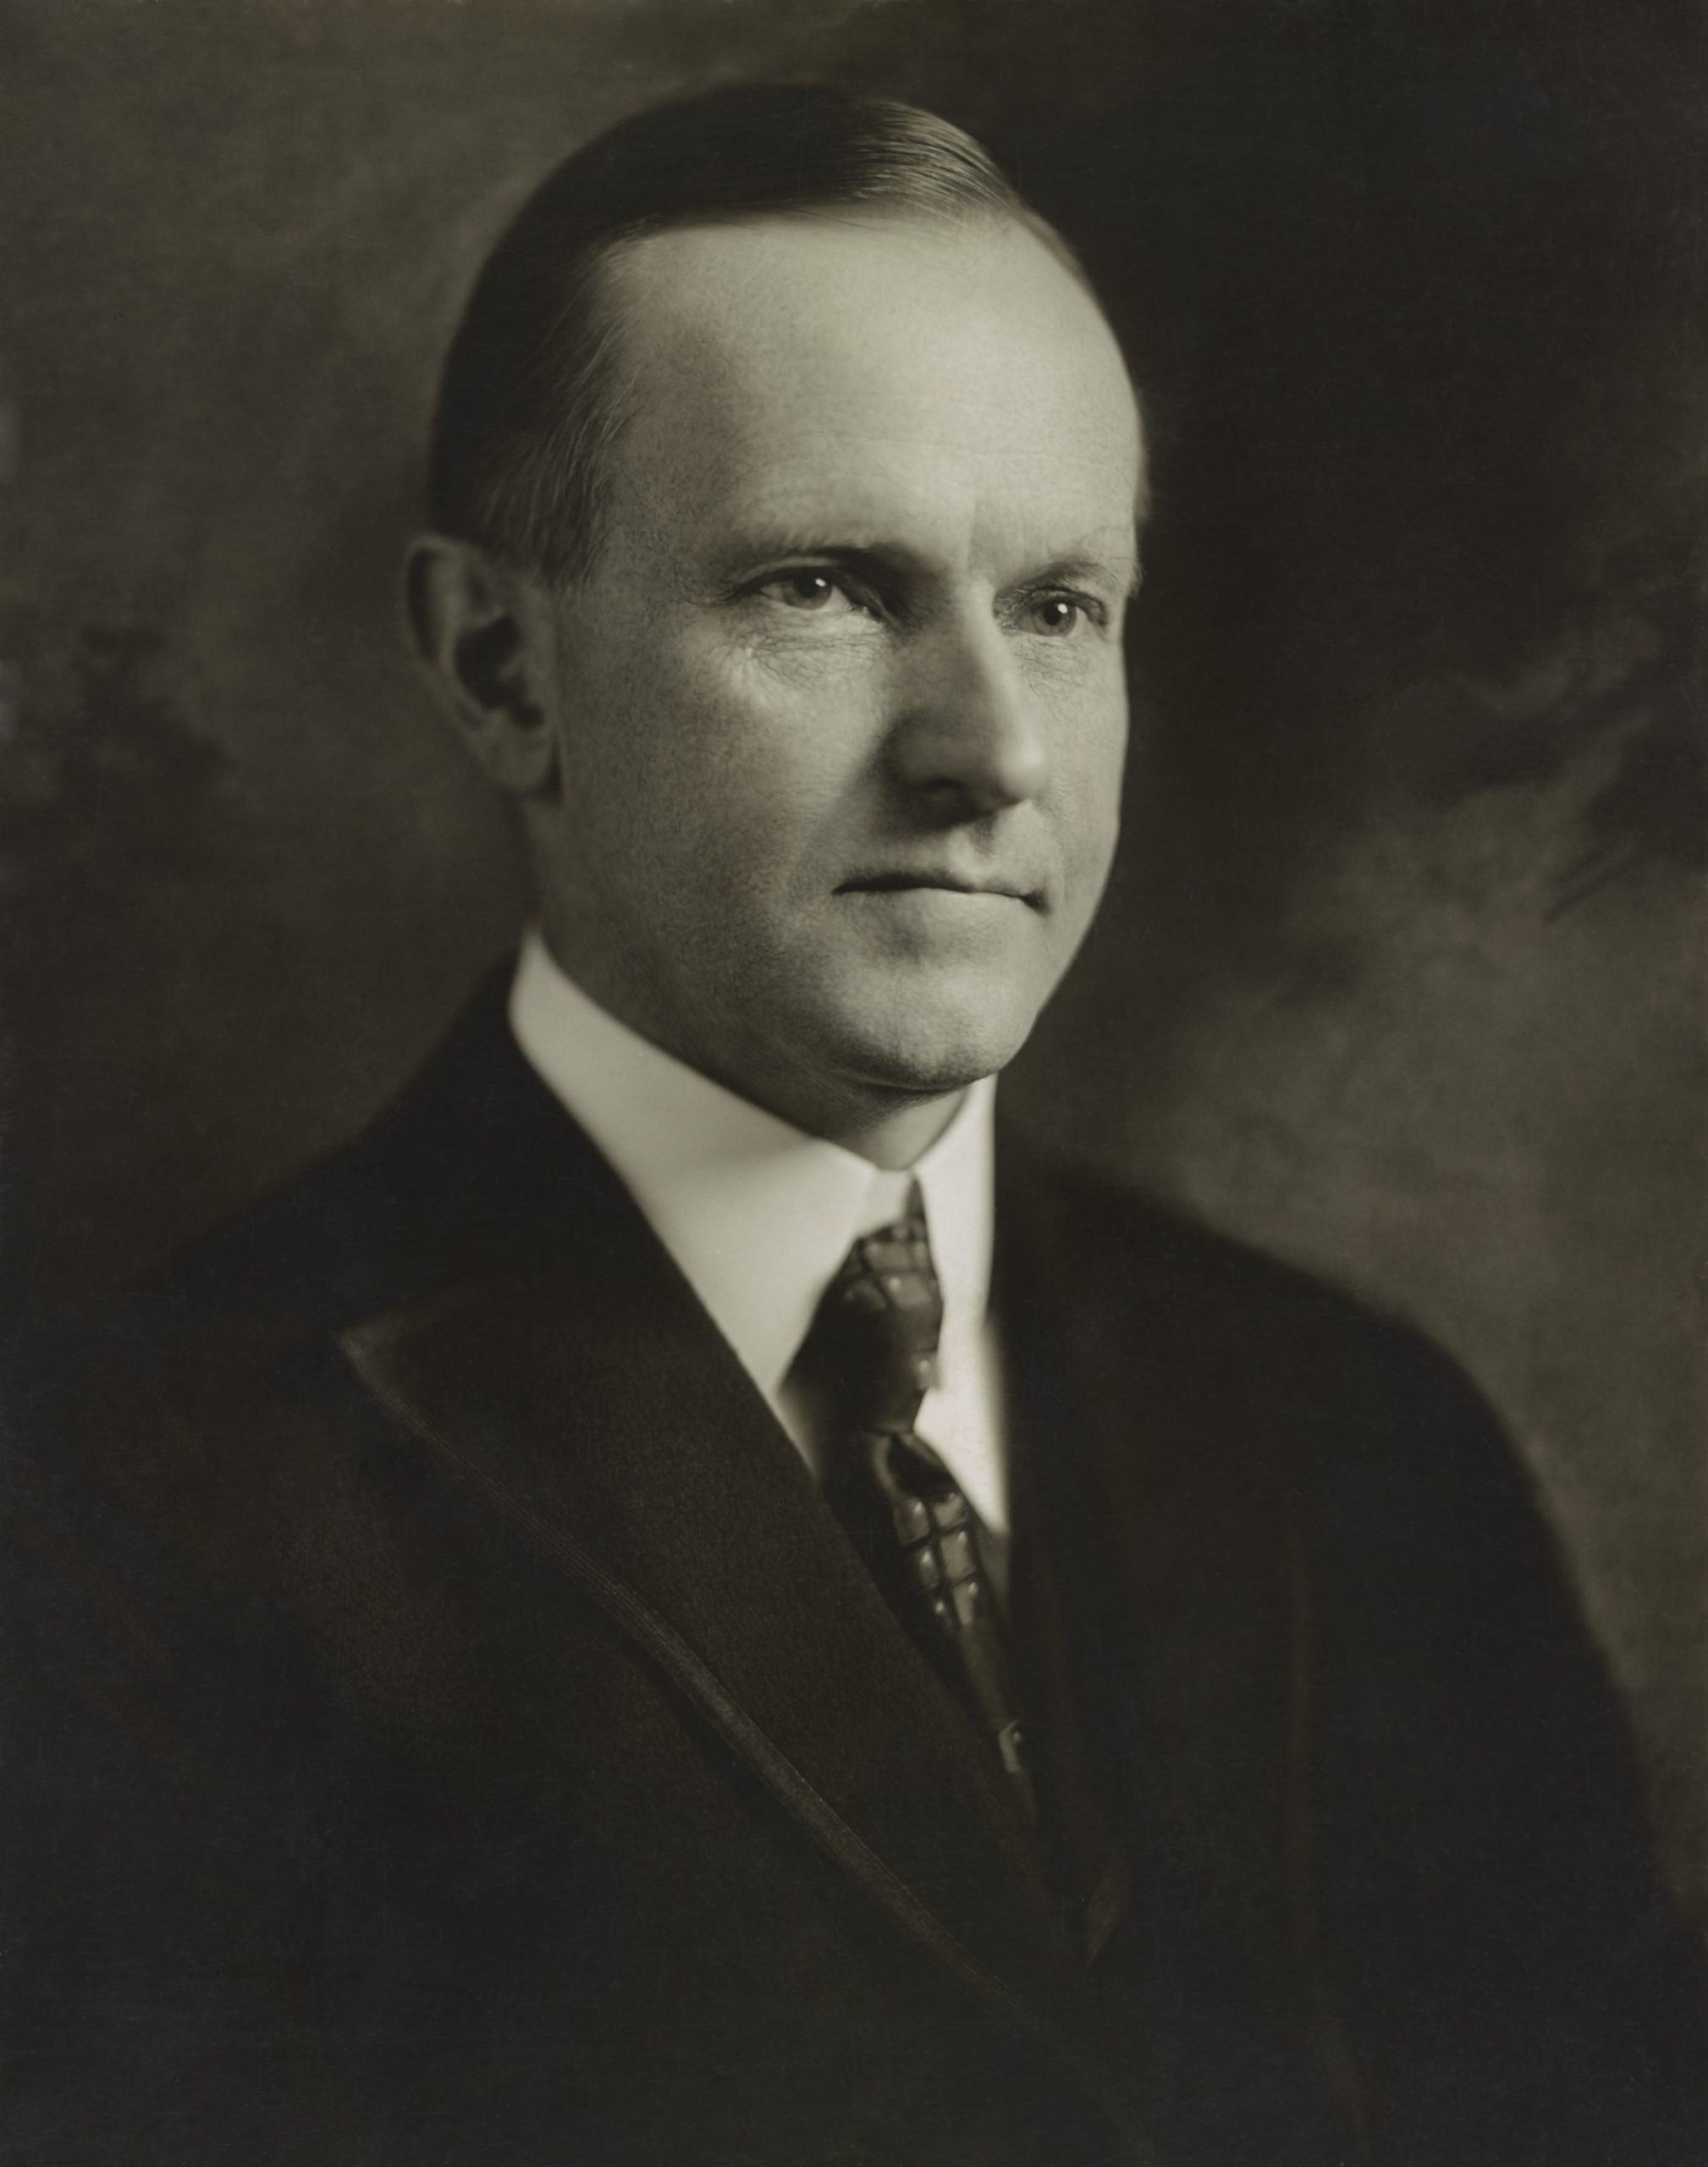 He was an American politician and lawyer who served as the 30th president of the United States from 1923 to 1929. A Republican lawyer from New England, born in Vermont, he worked his way up the ladder of Massachusetts state politics, eventually becoming governor of Massachusetts.